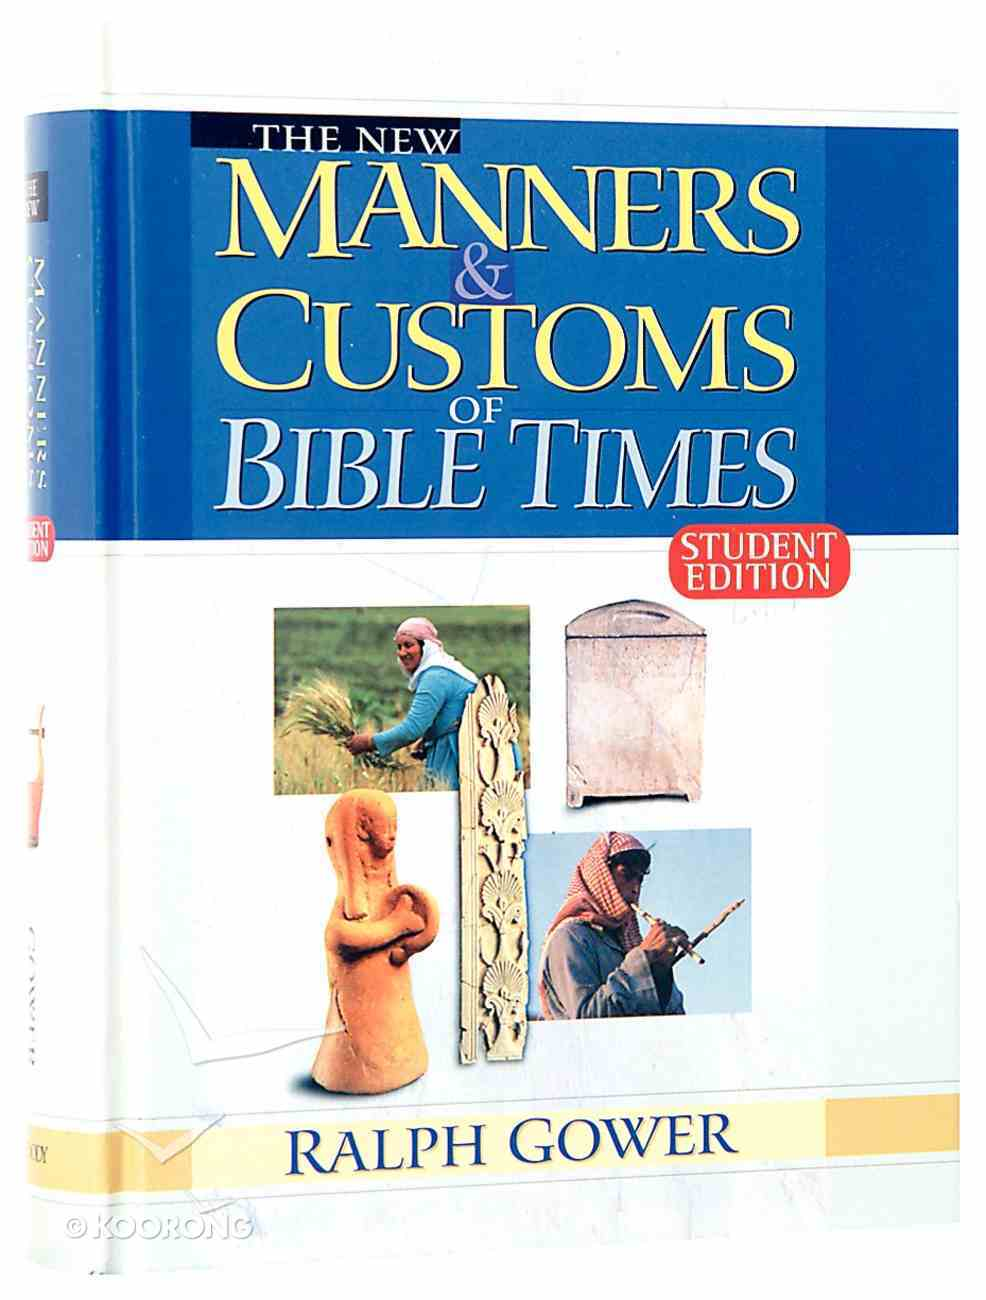 The New Manners & Customs of Bible Times (Student Edition) Hardback